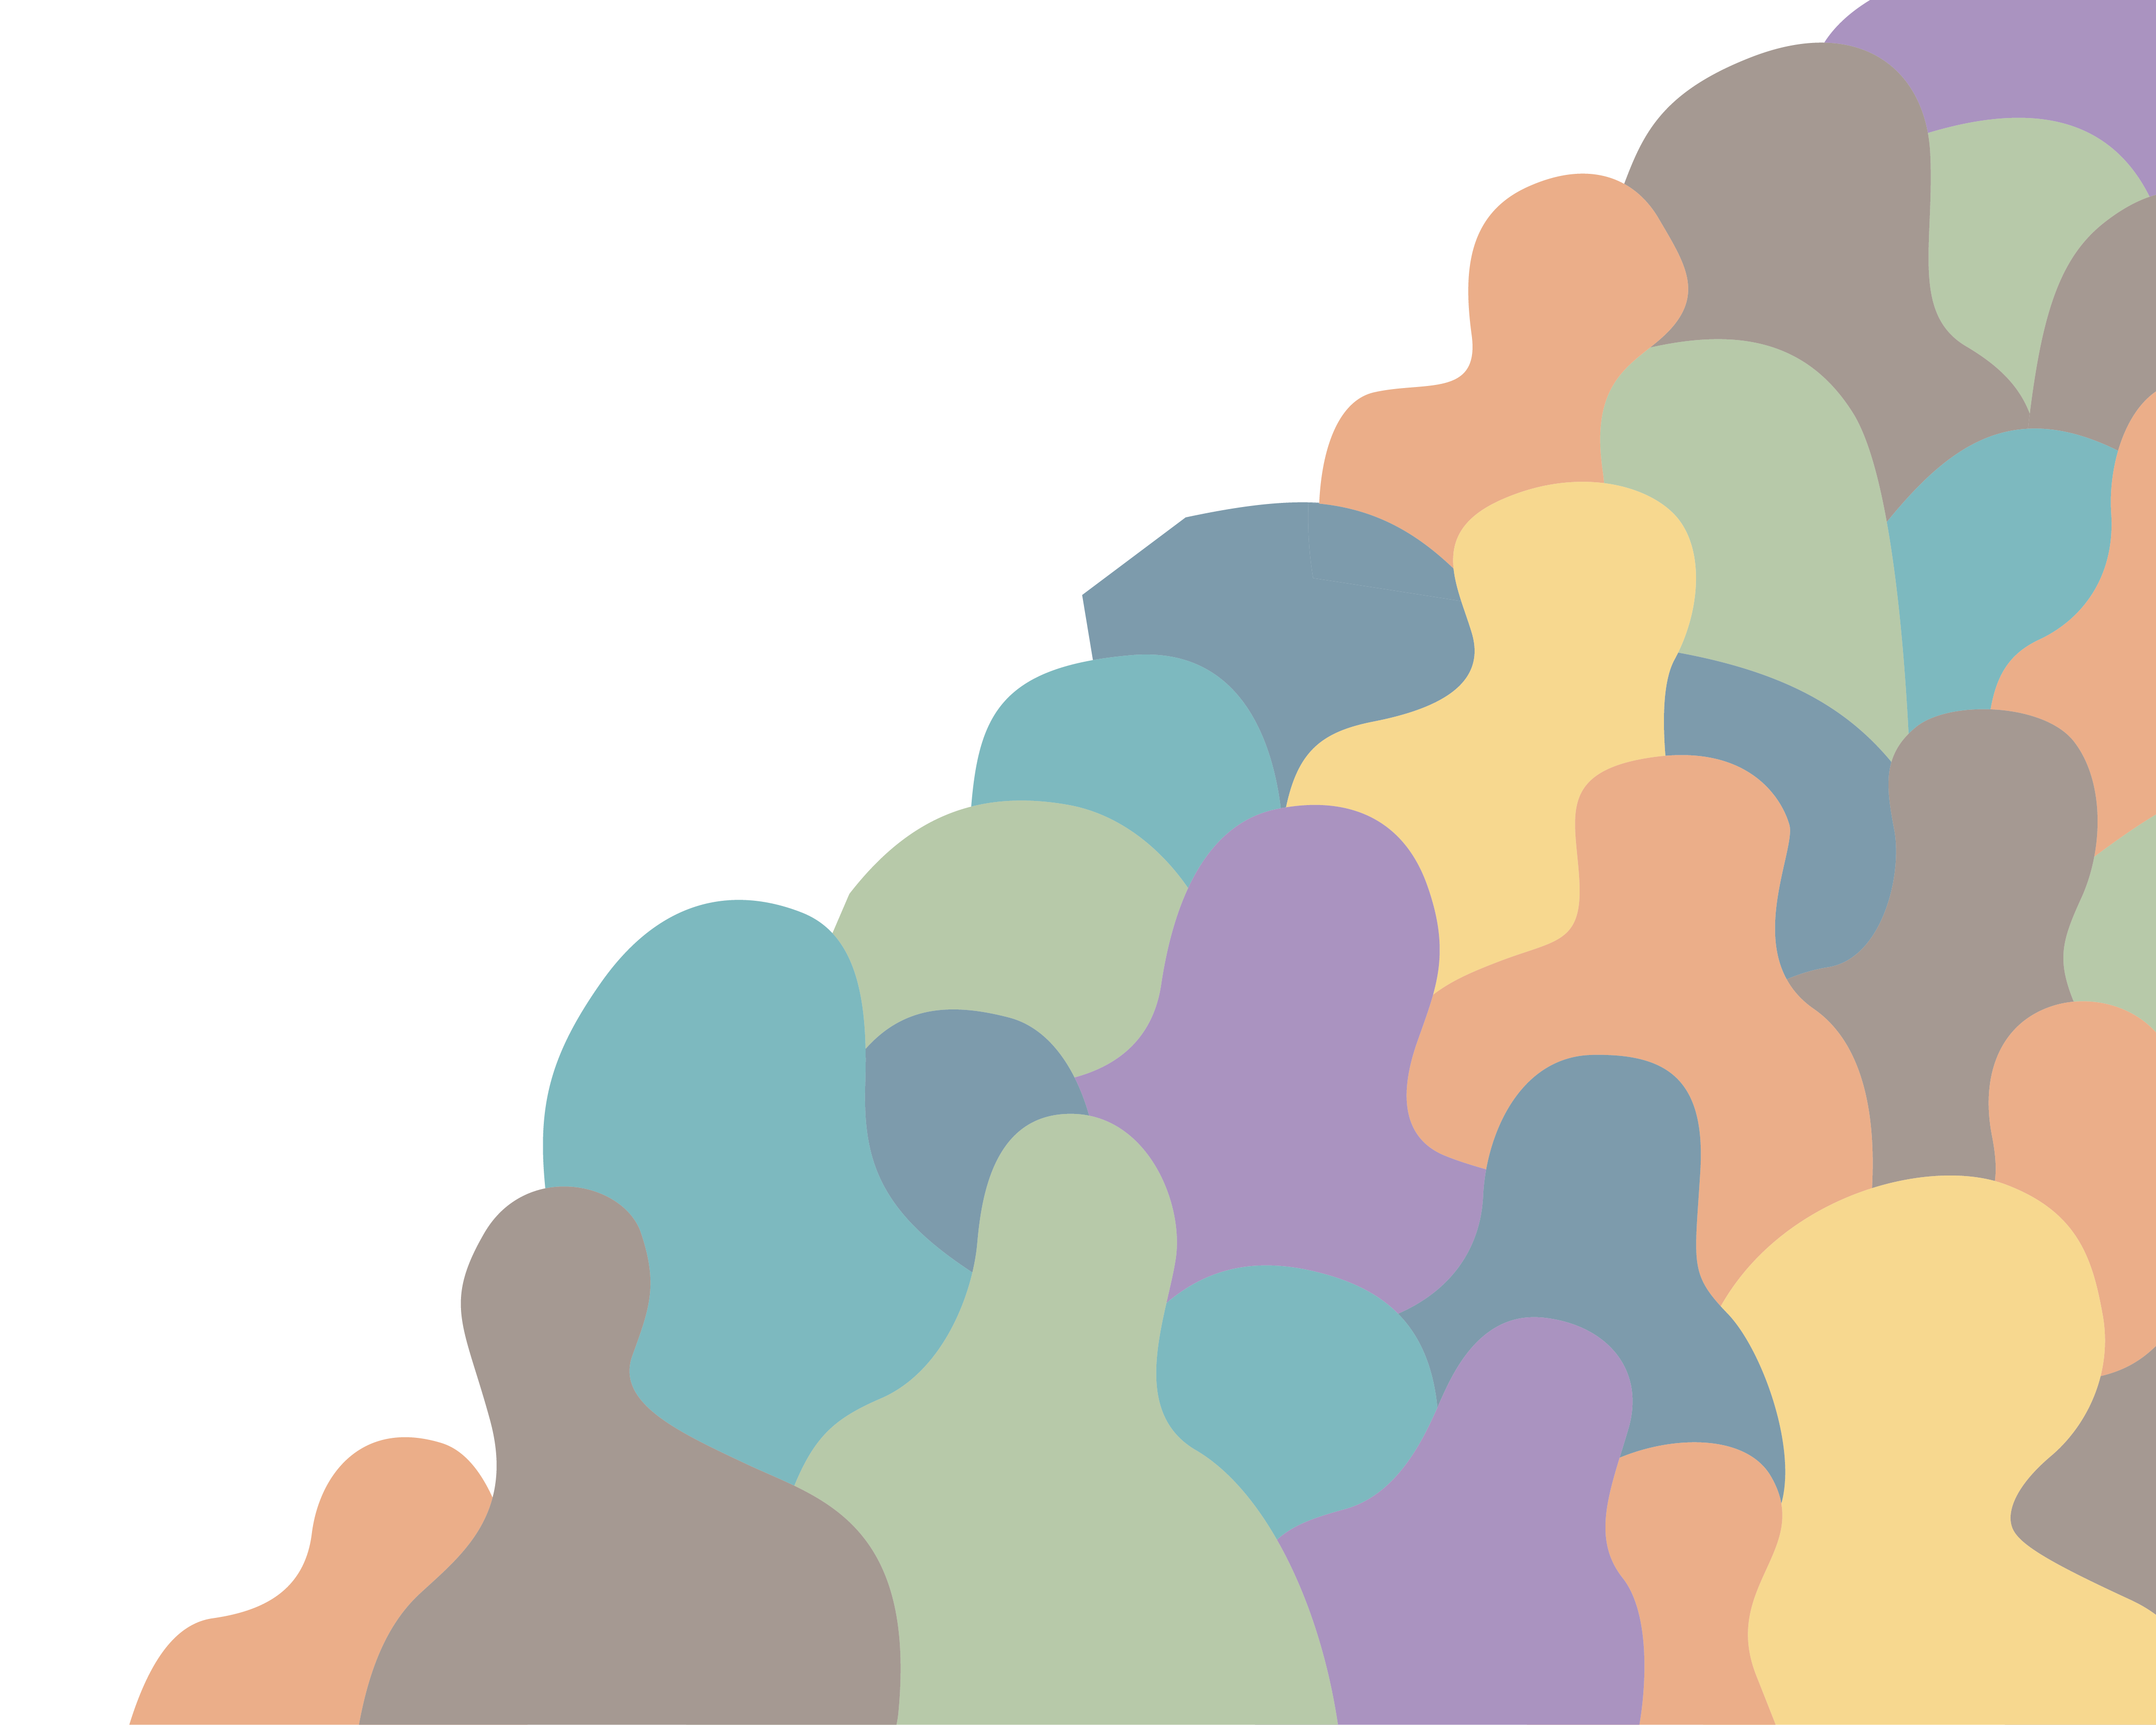 Colorful blobs resembling a crowd of diverse people